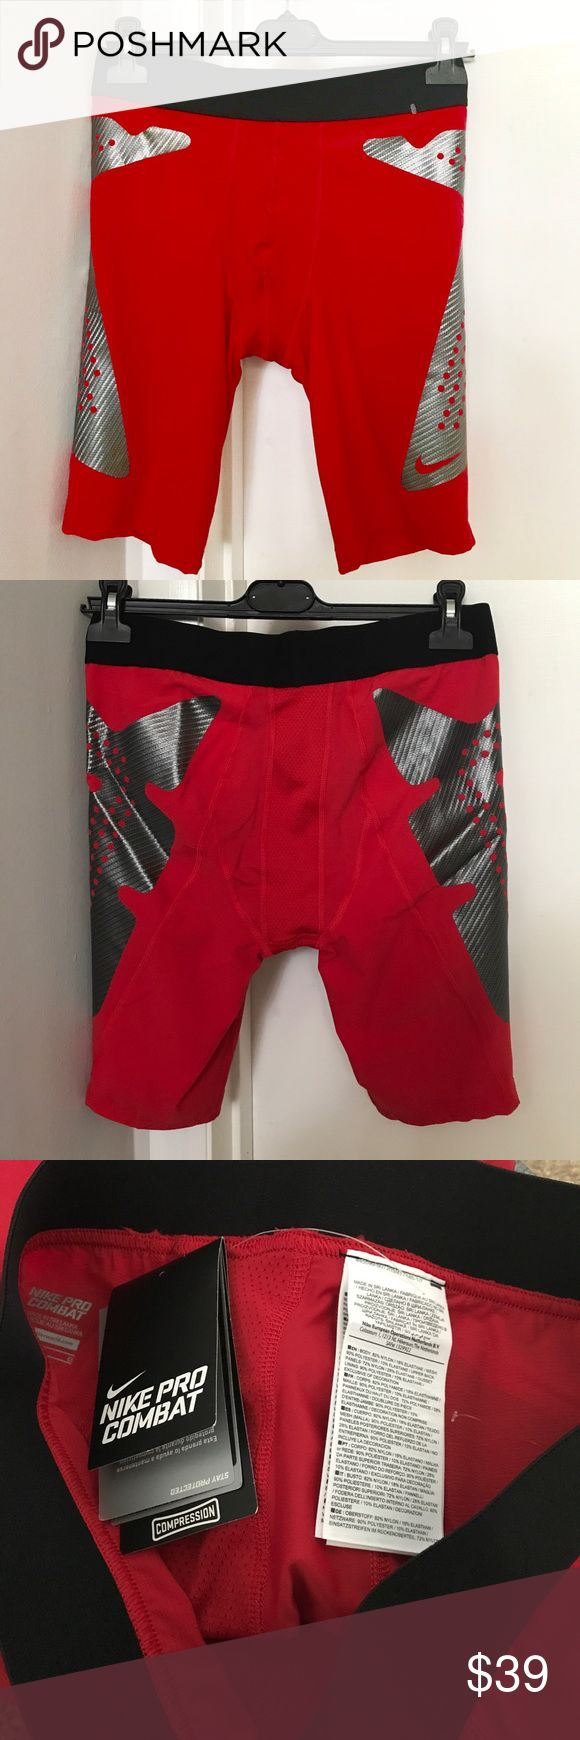 ✔️NWT Nike Pro Combat Compression Shorts Brand new with tags. Price: Fair and reasonable offer immediately accepted. Shipping: Ships within 24 hours. Nike Shorts Athletic